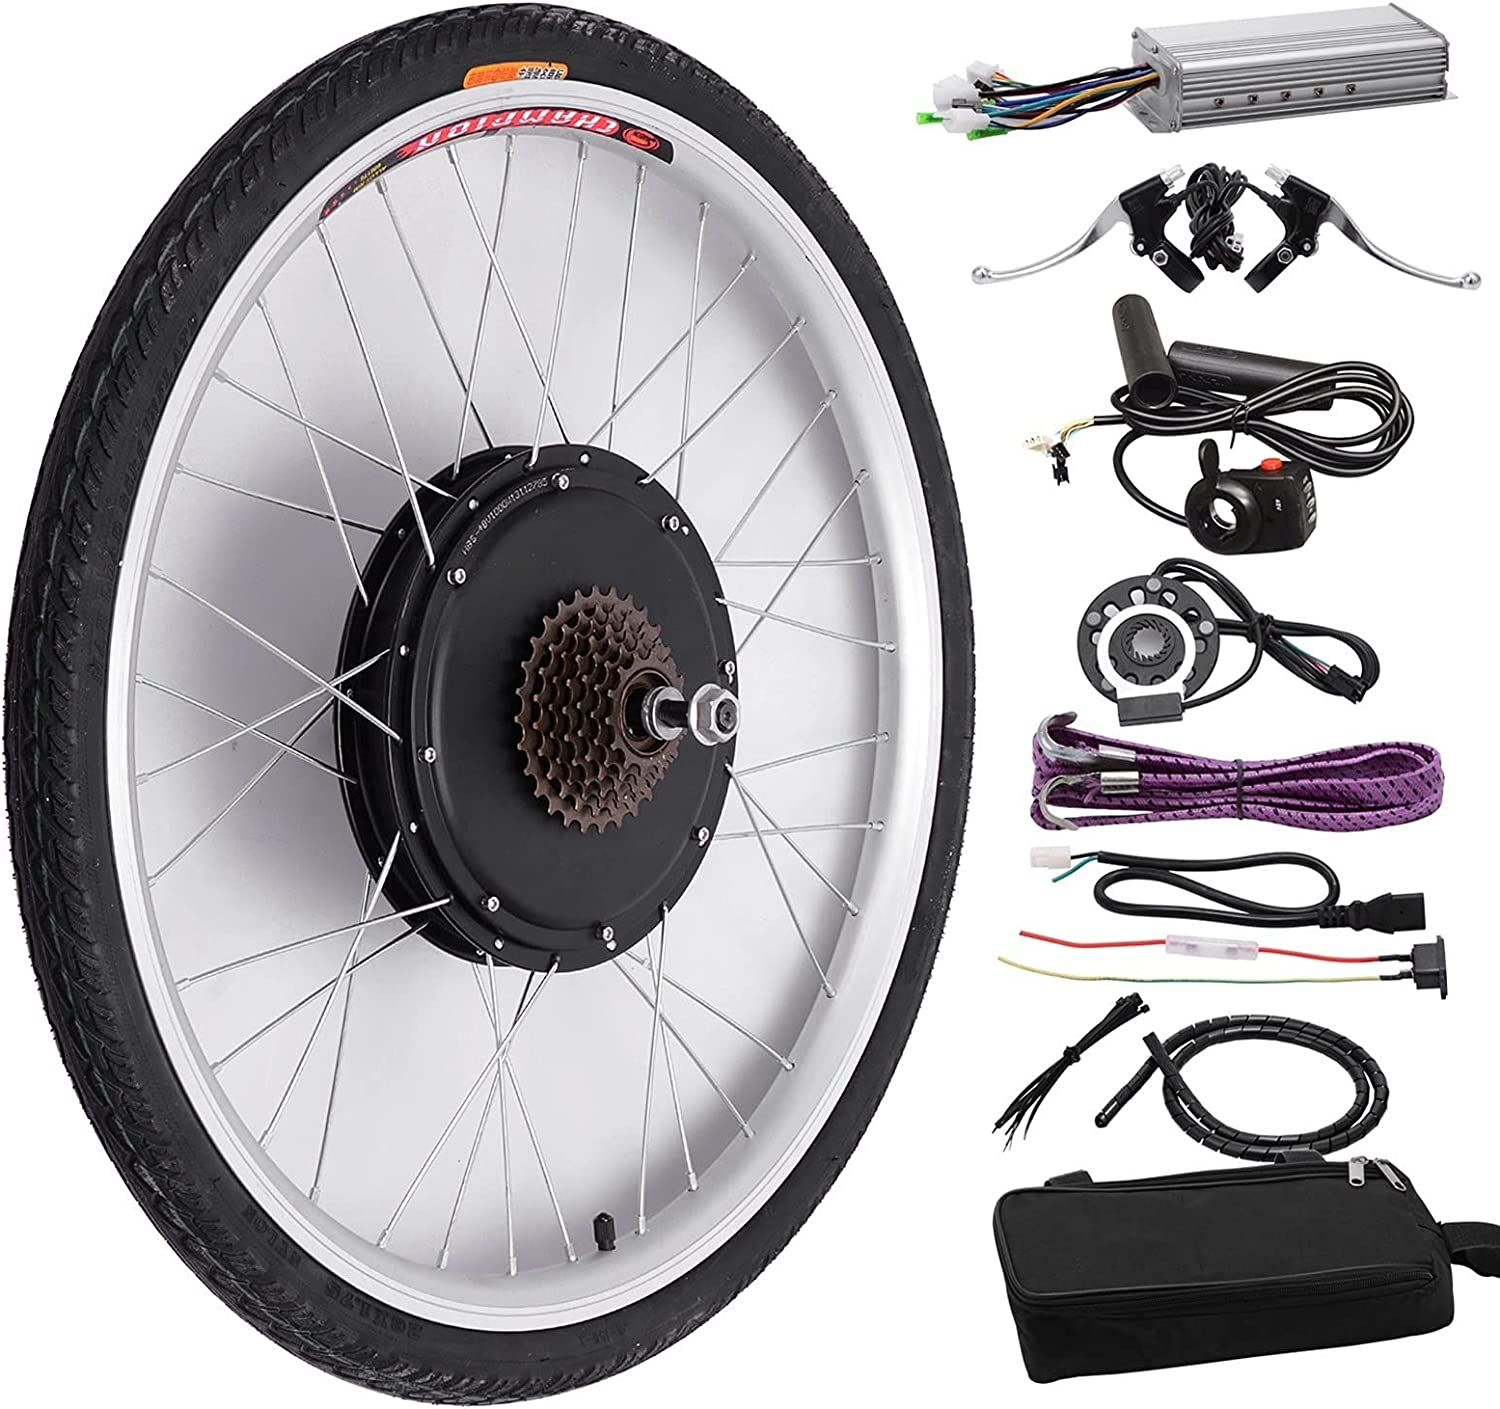 HSY SHOP Electric Bicycle 48V brushles Rotating 1000W Rear Oakland Oakland Mall Mall Wheel